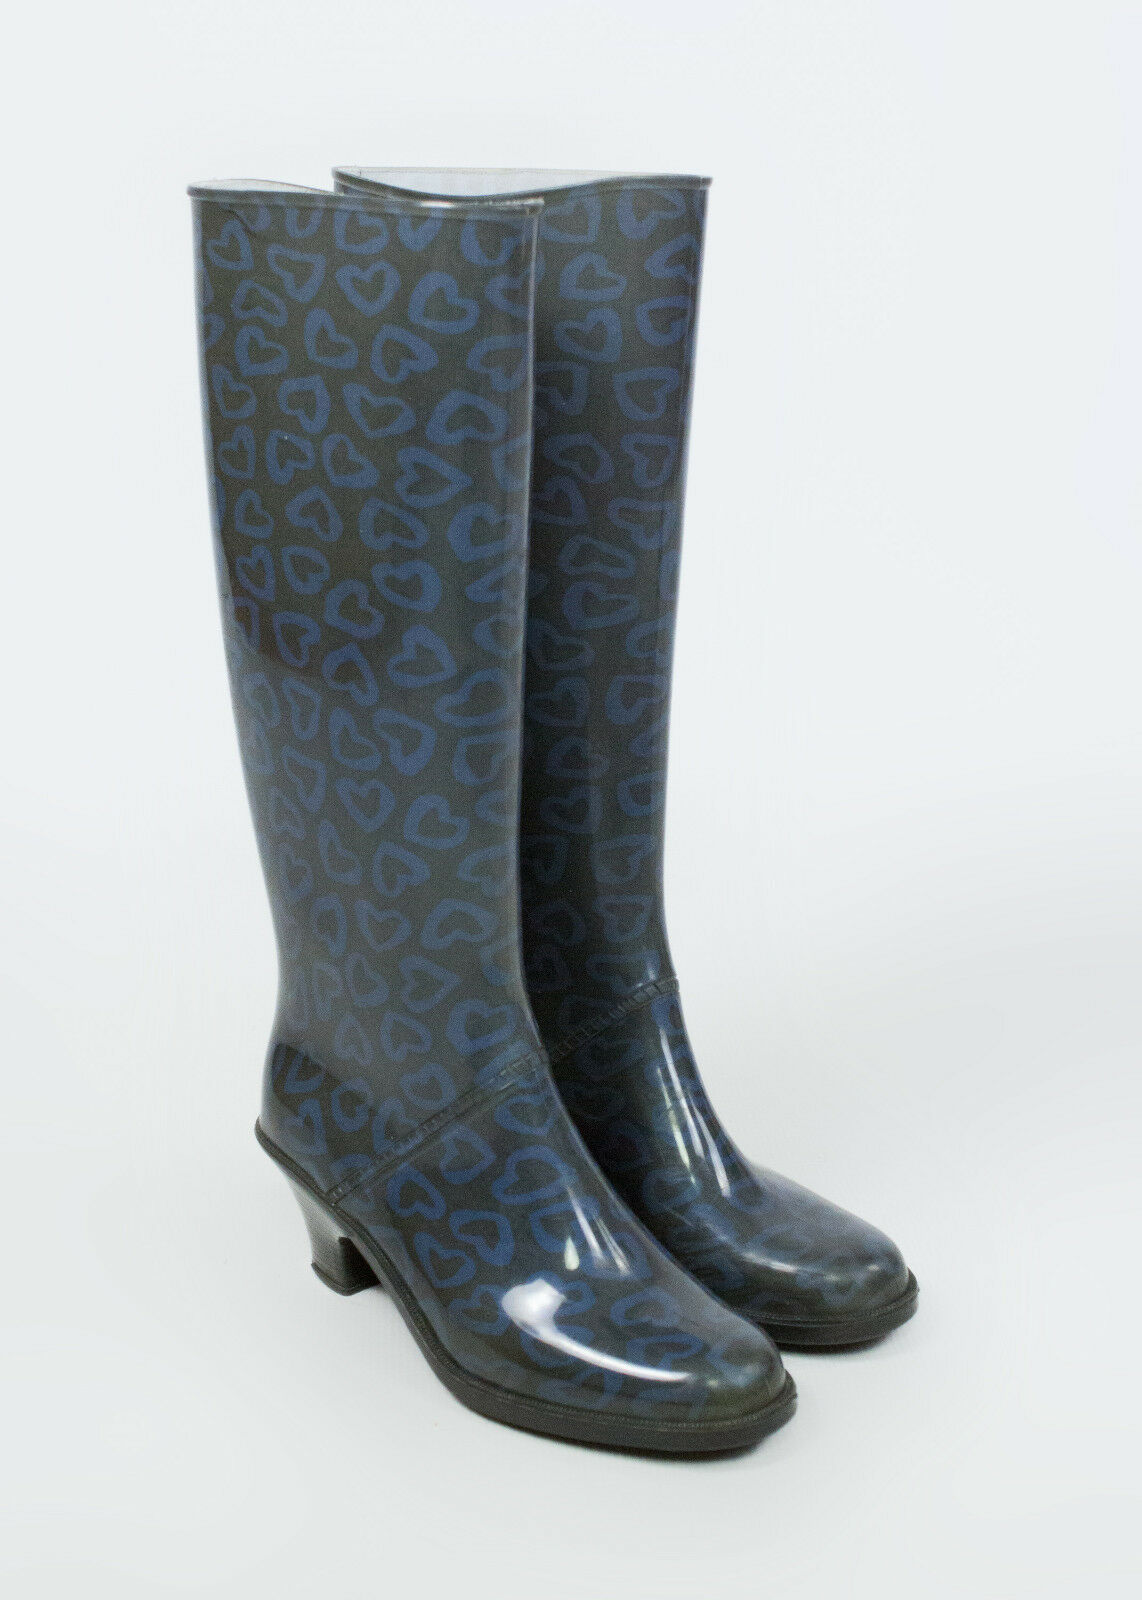 MARC by MARC JACOBS  Tall Rubber Rain Boots Wellies, SIZE EU 39; US 8; UK 6